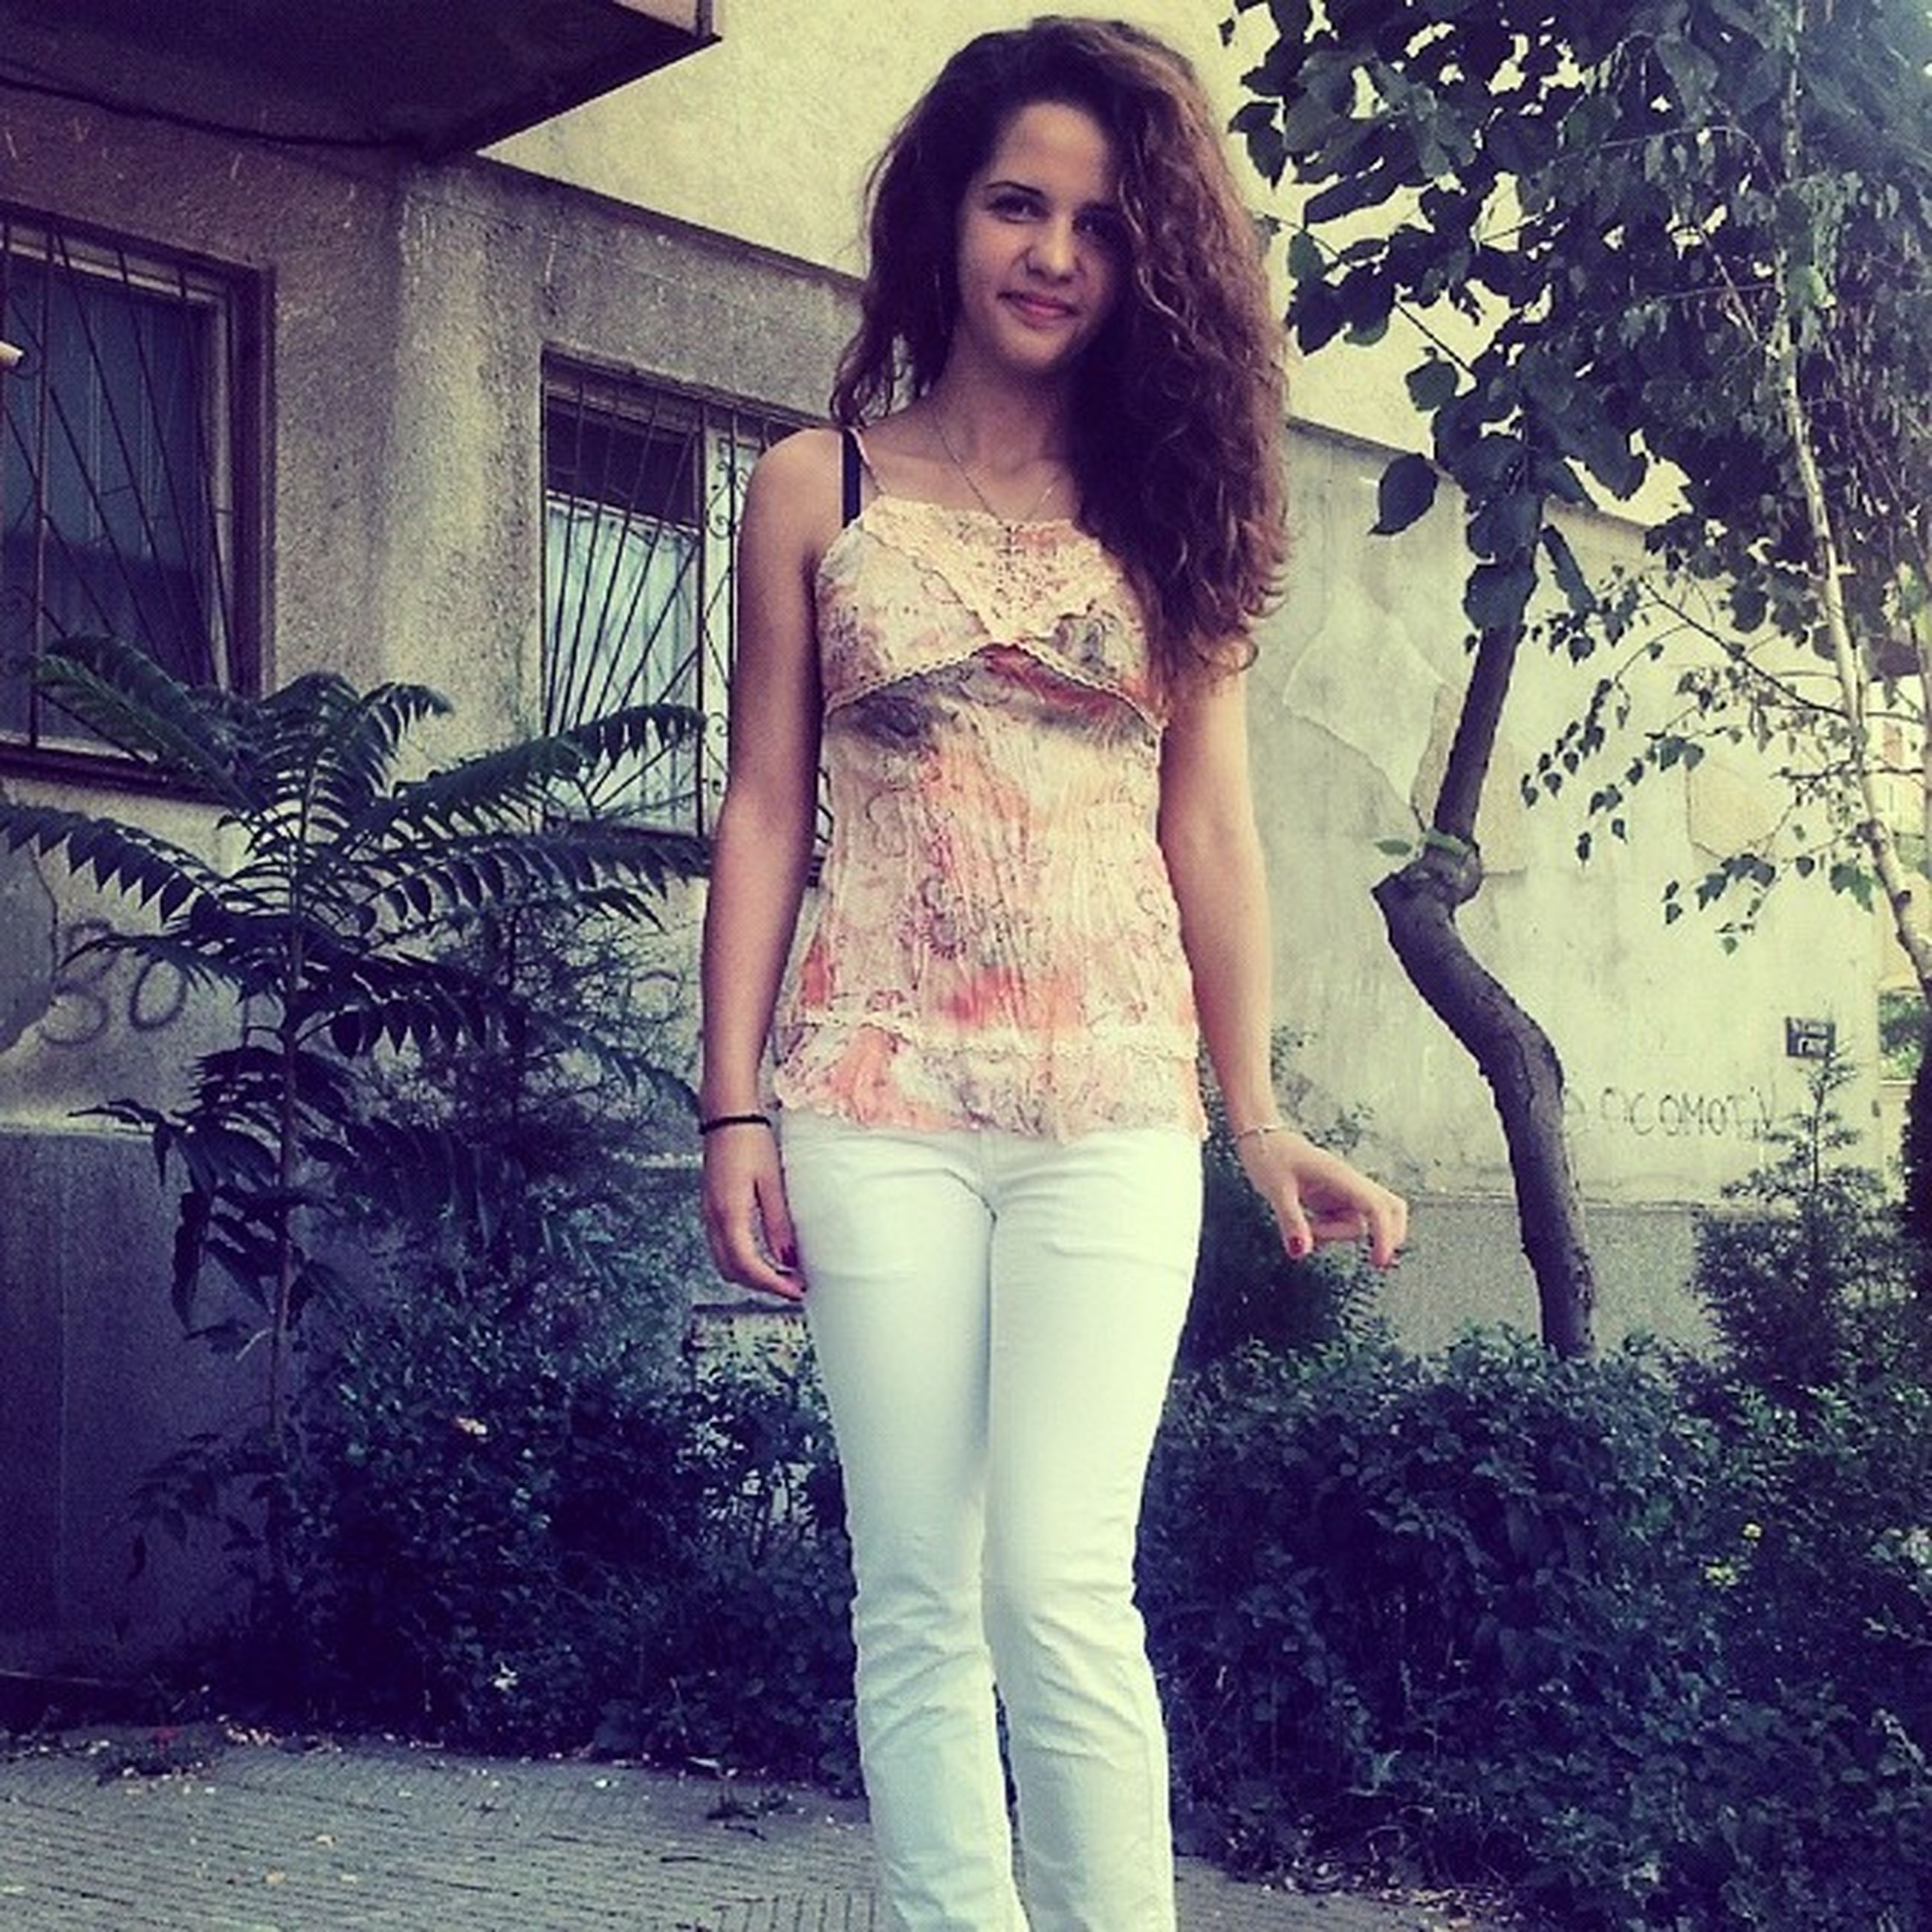 young adult, young women, person, lifestyles, casual clothing, standing, portrait, front view, looking at camera, long hair, leisure activity, three quarter length, full length, beauty, sensuality, posing, smiling